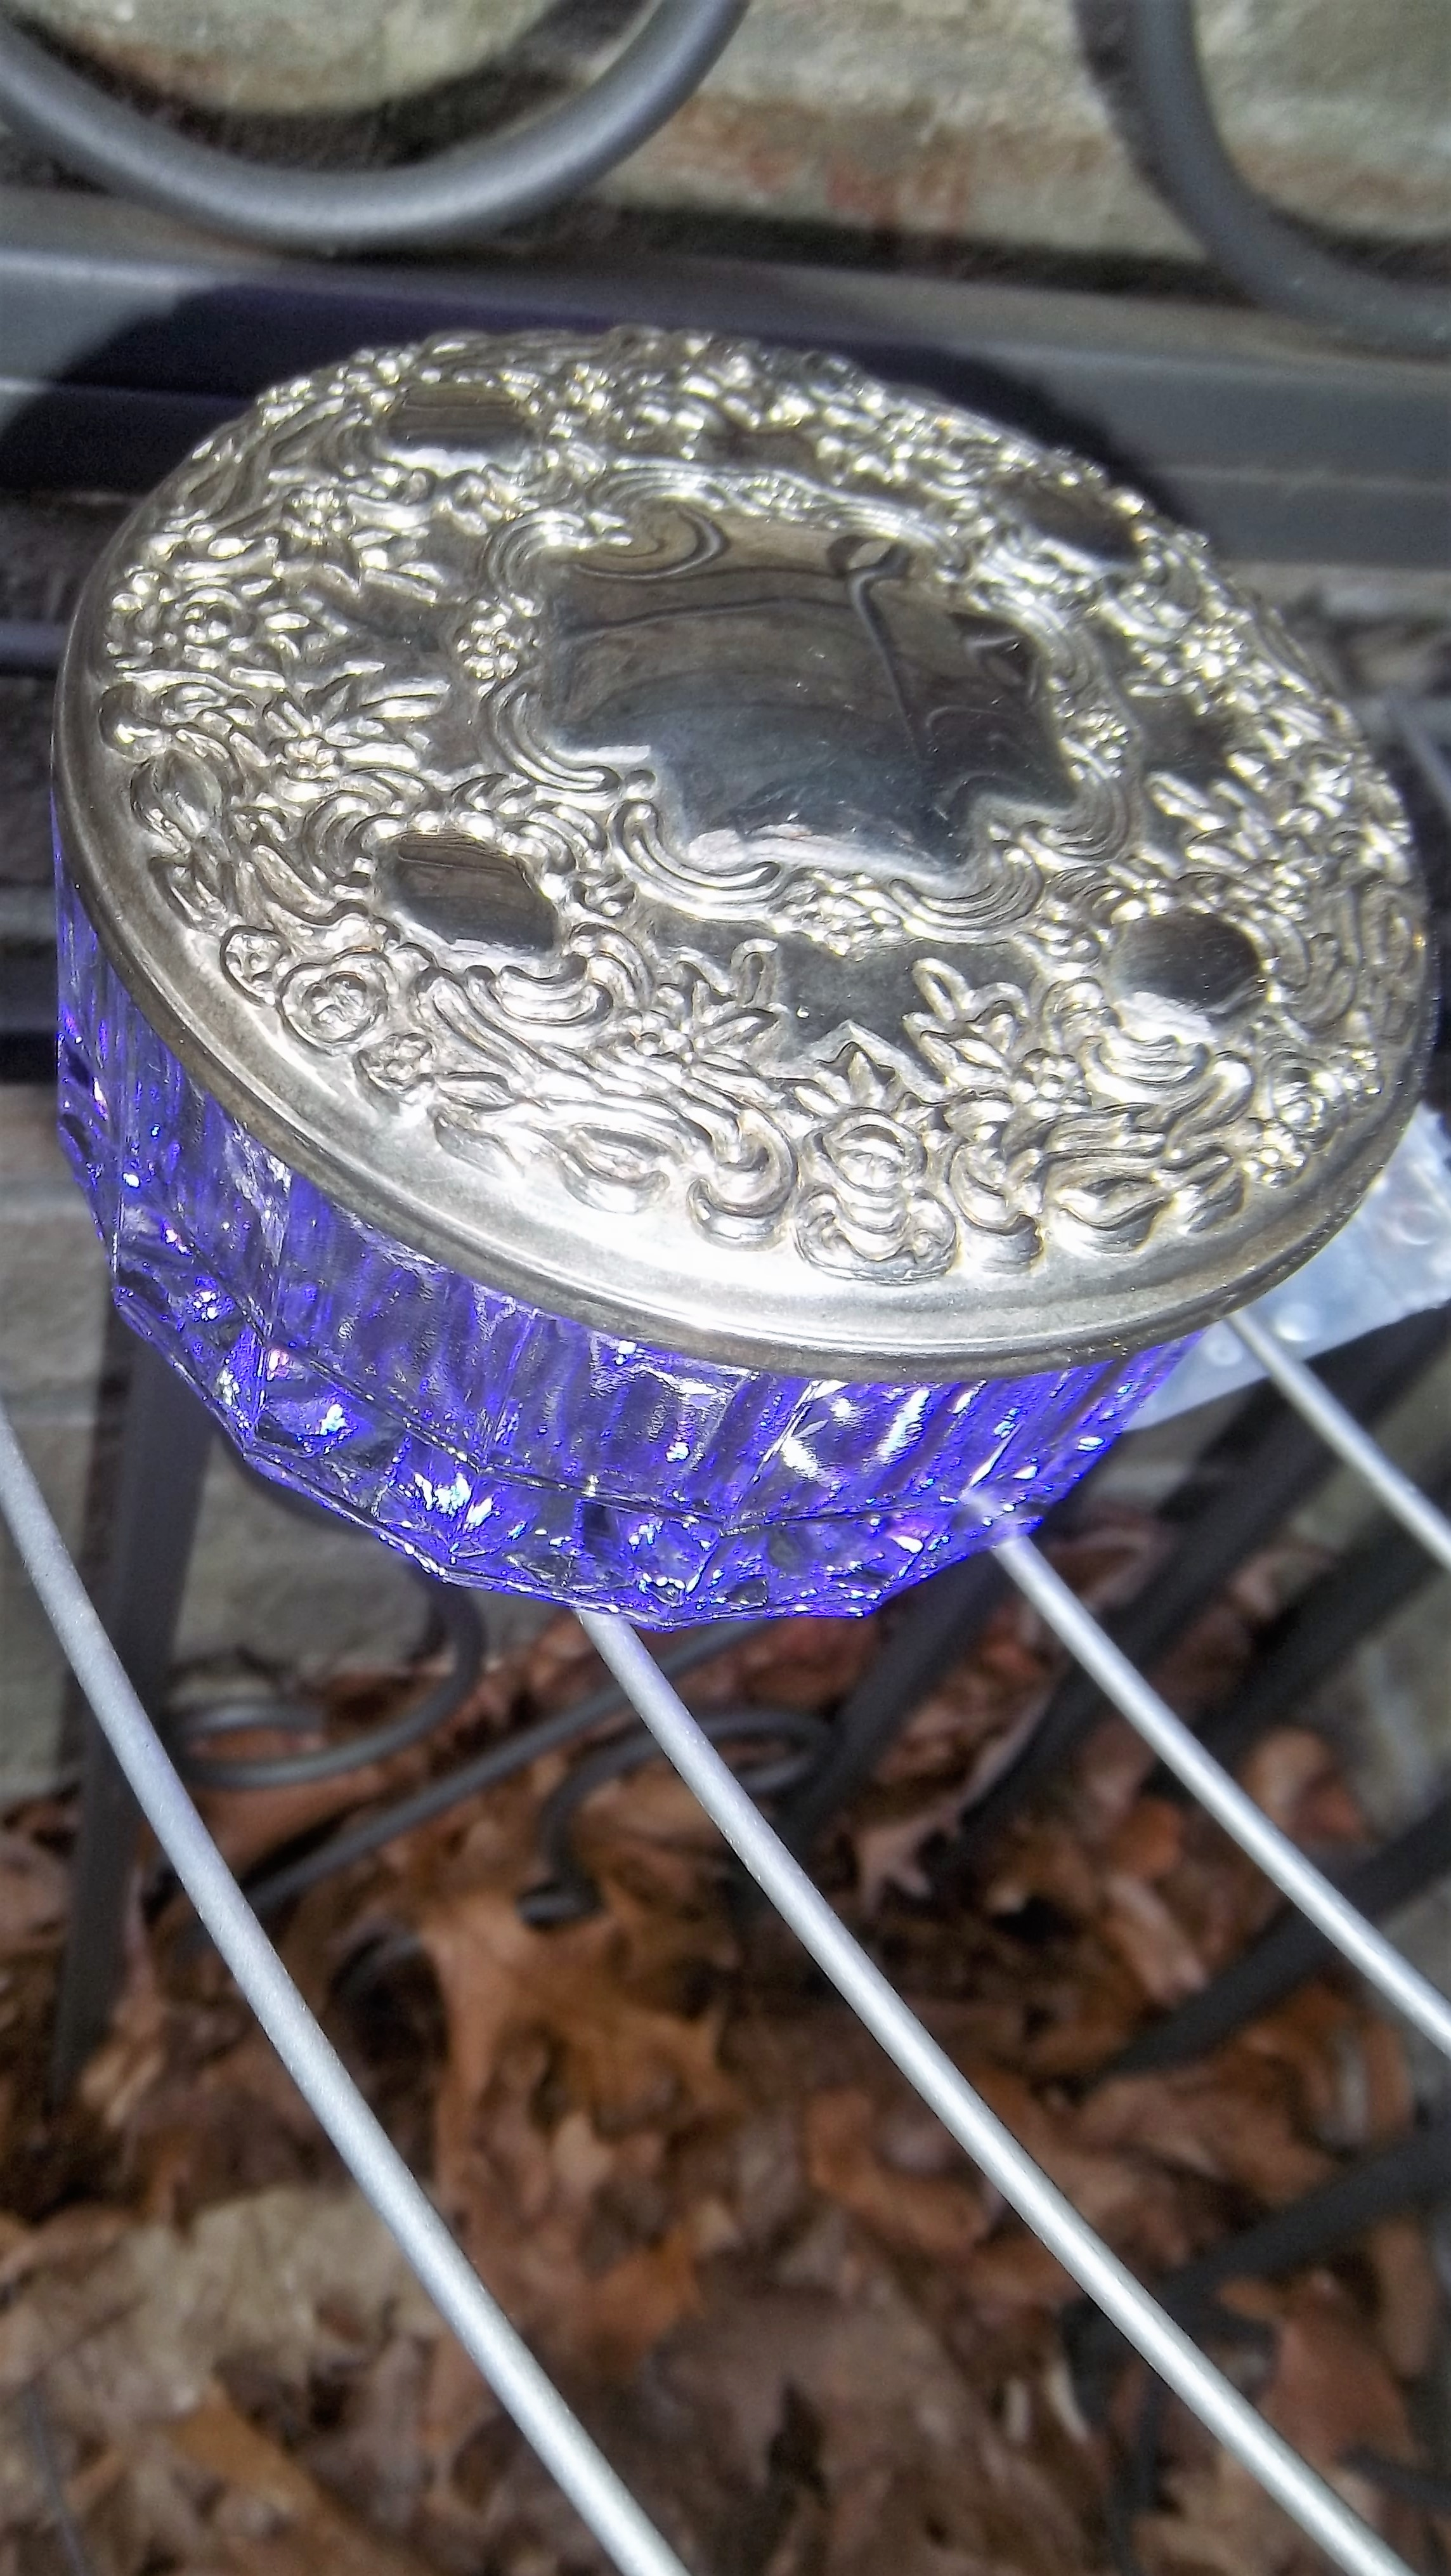 Magical Aura Lantern with Silver-Plate Lid